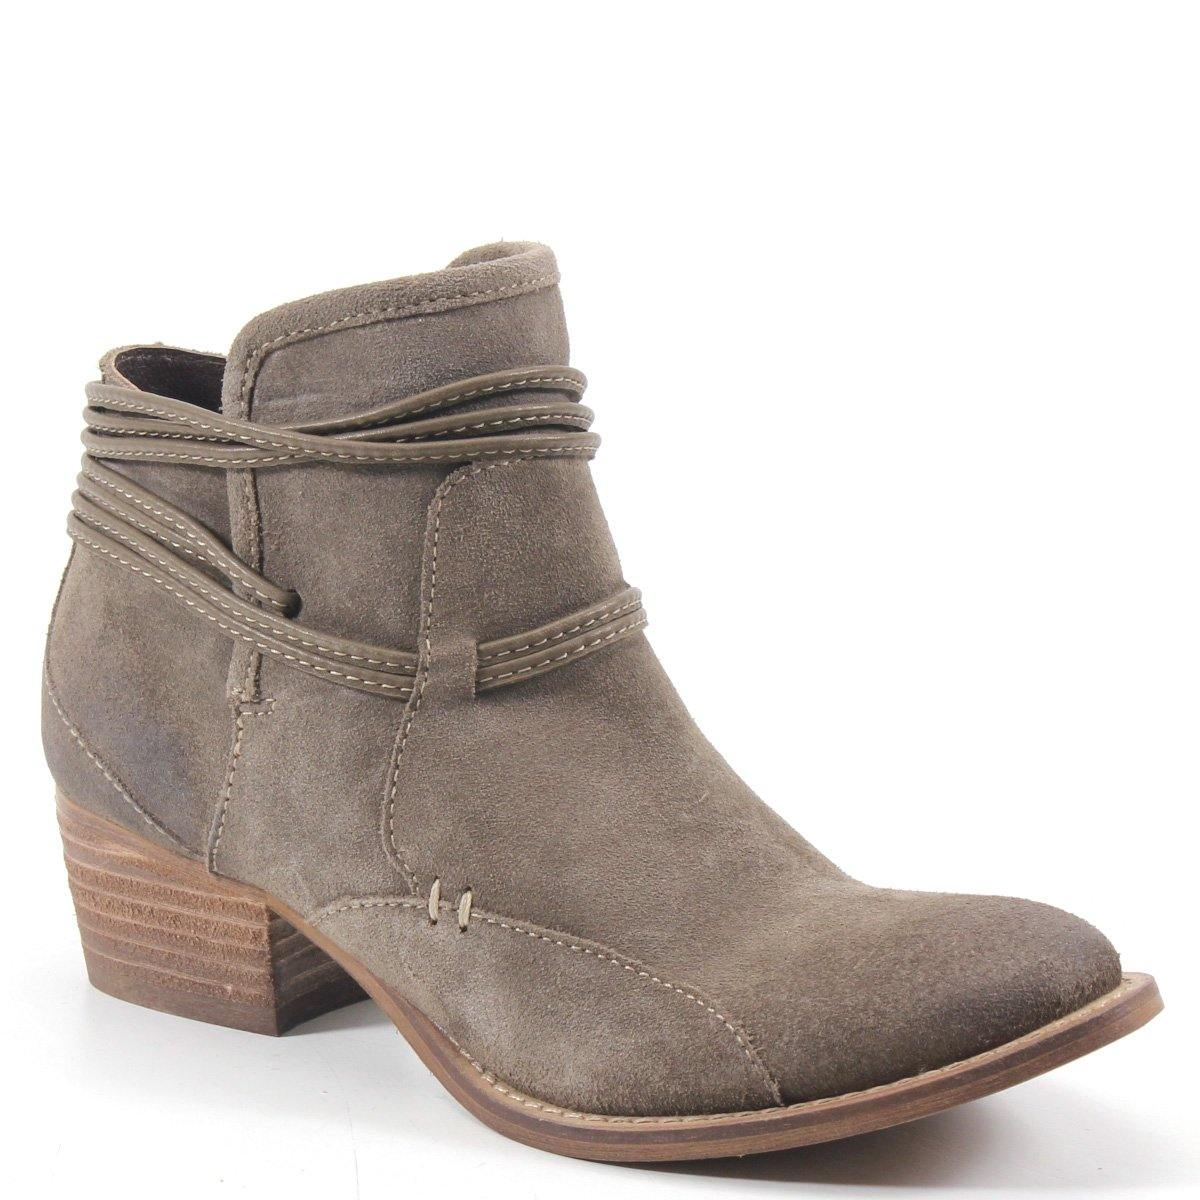 A soft suede bootie fit with a rope design detail and artistic top-stitching. An inside zipper and the 1.5- inch modest heel height has SMOKY BLUE ready to take the scenic route.